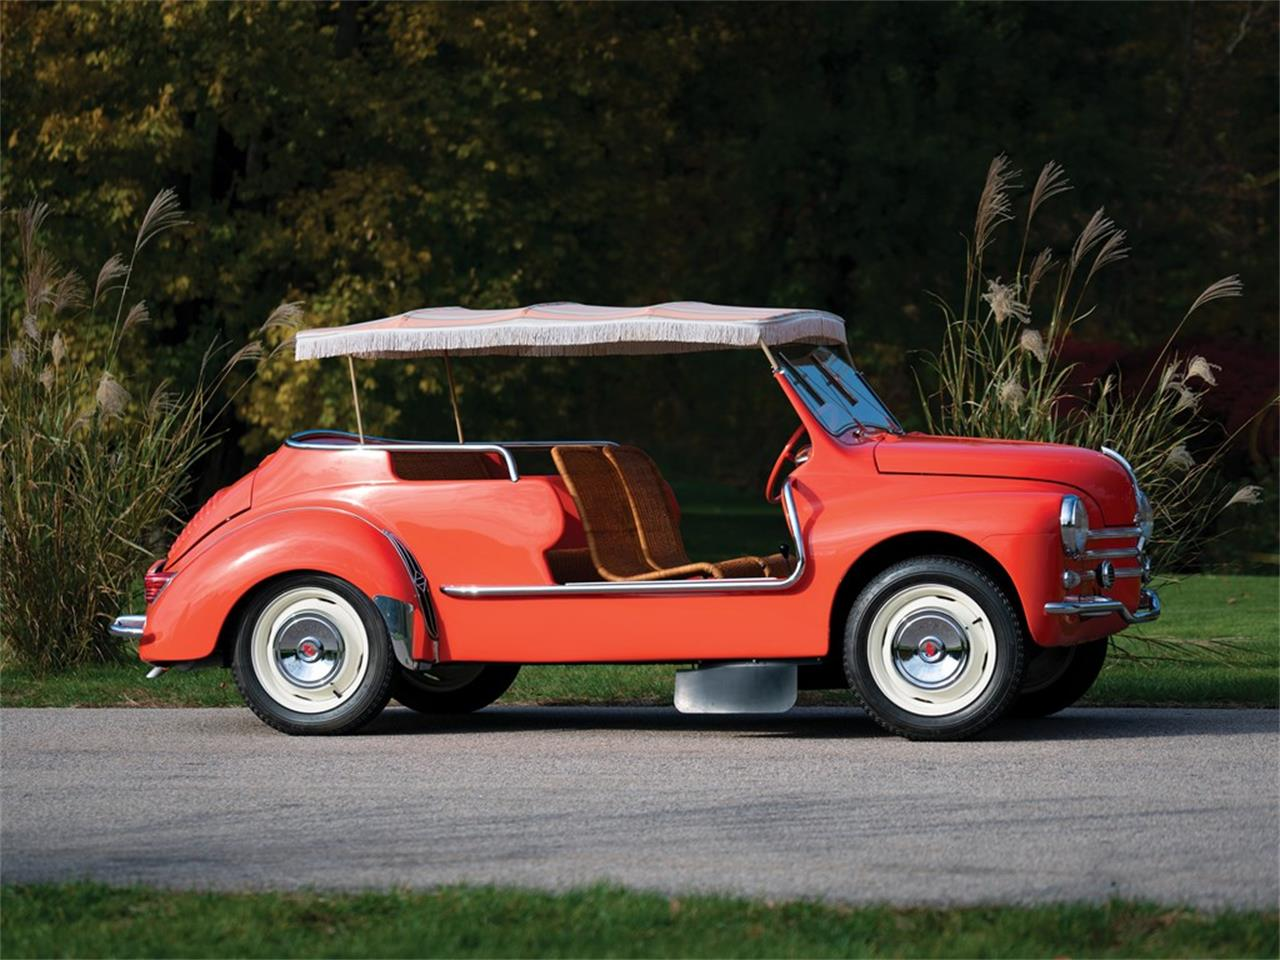 Large Picture of 1960 4CV Jolly located in Culver City California Auction Vehicle Offered by RM Sotheby's - OXJ2